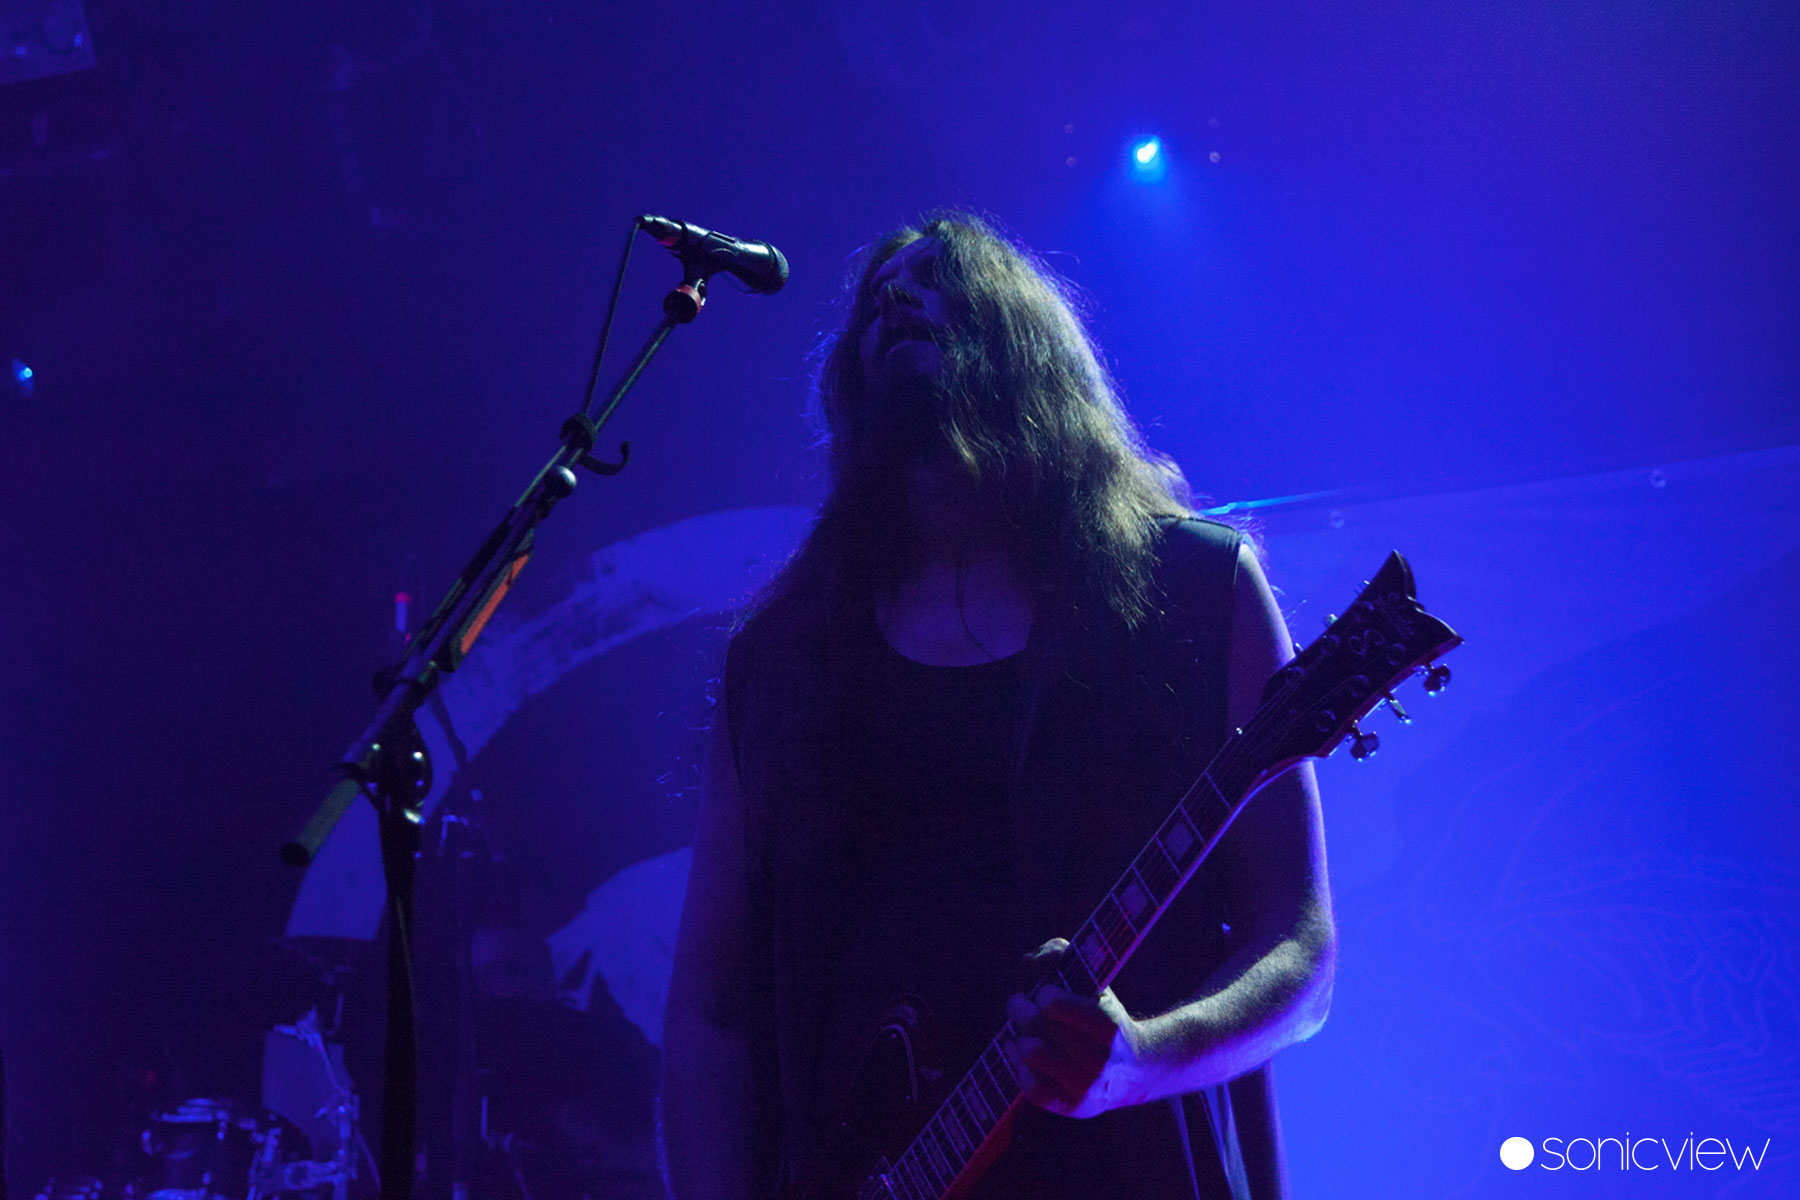 Katatonia: Live at Pumpehuset 2017, Copenhagen, Denmark